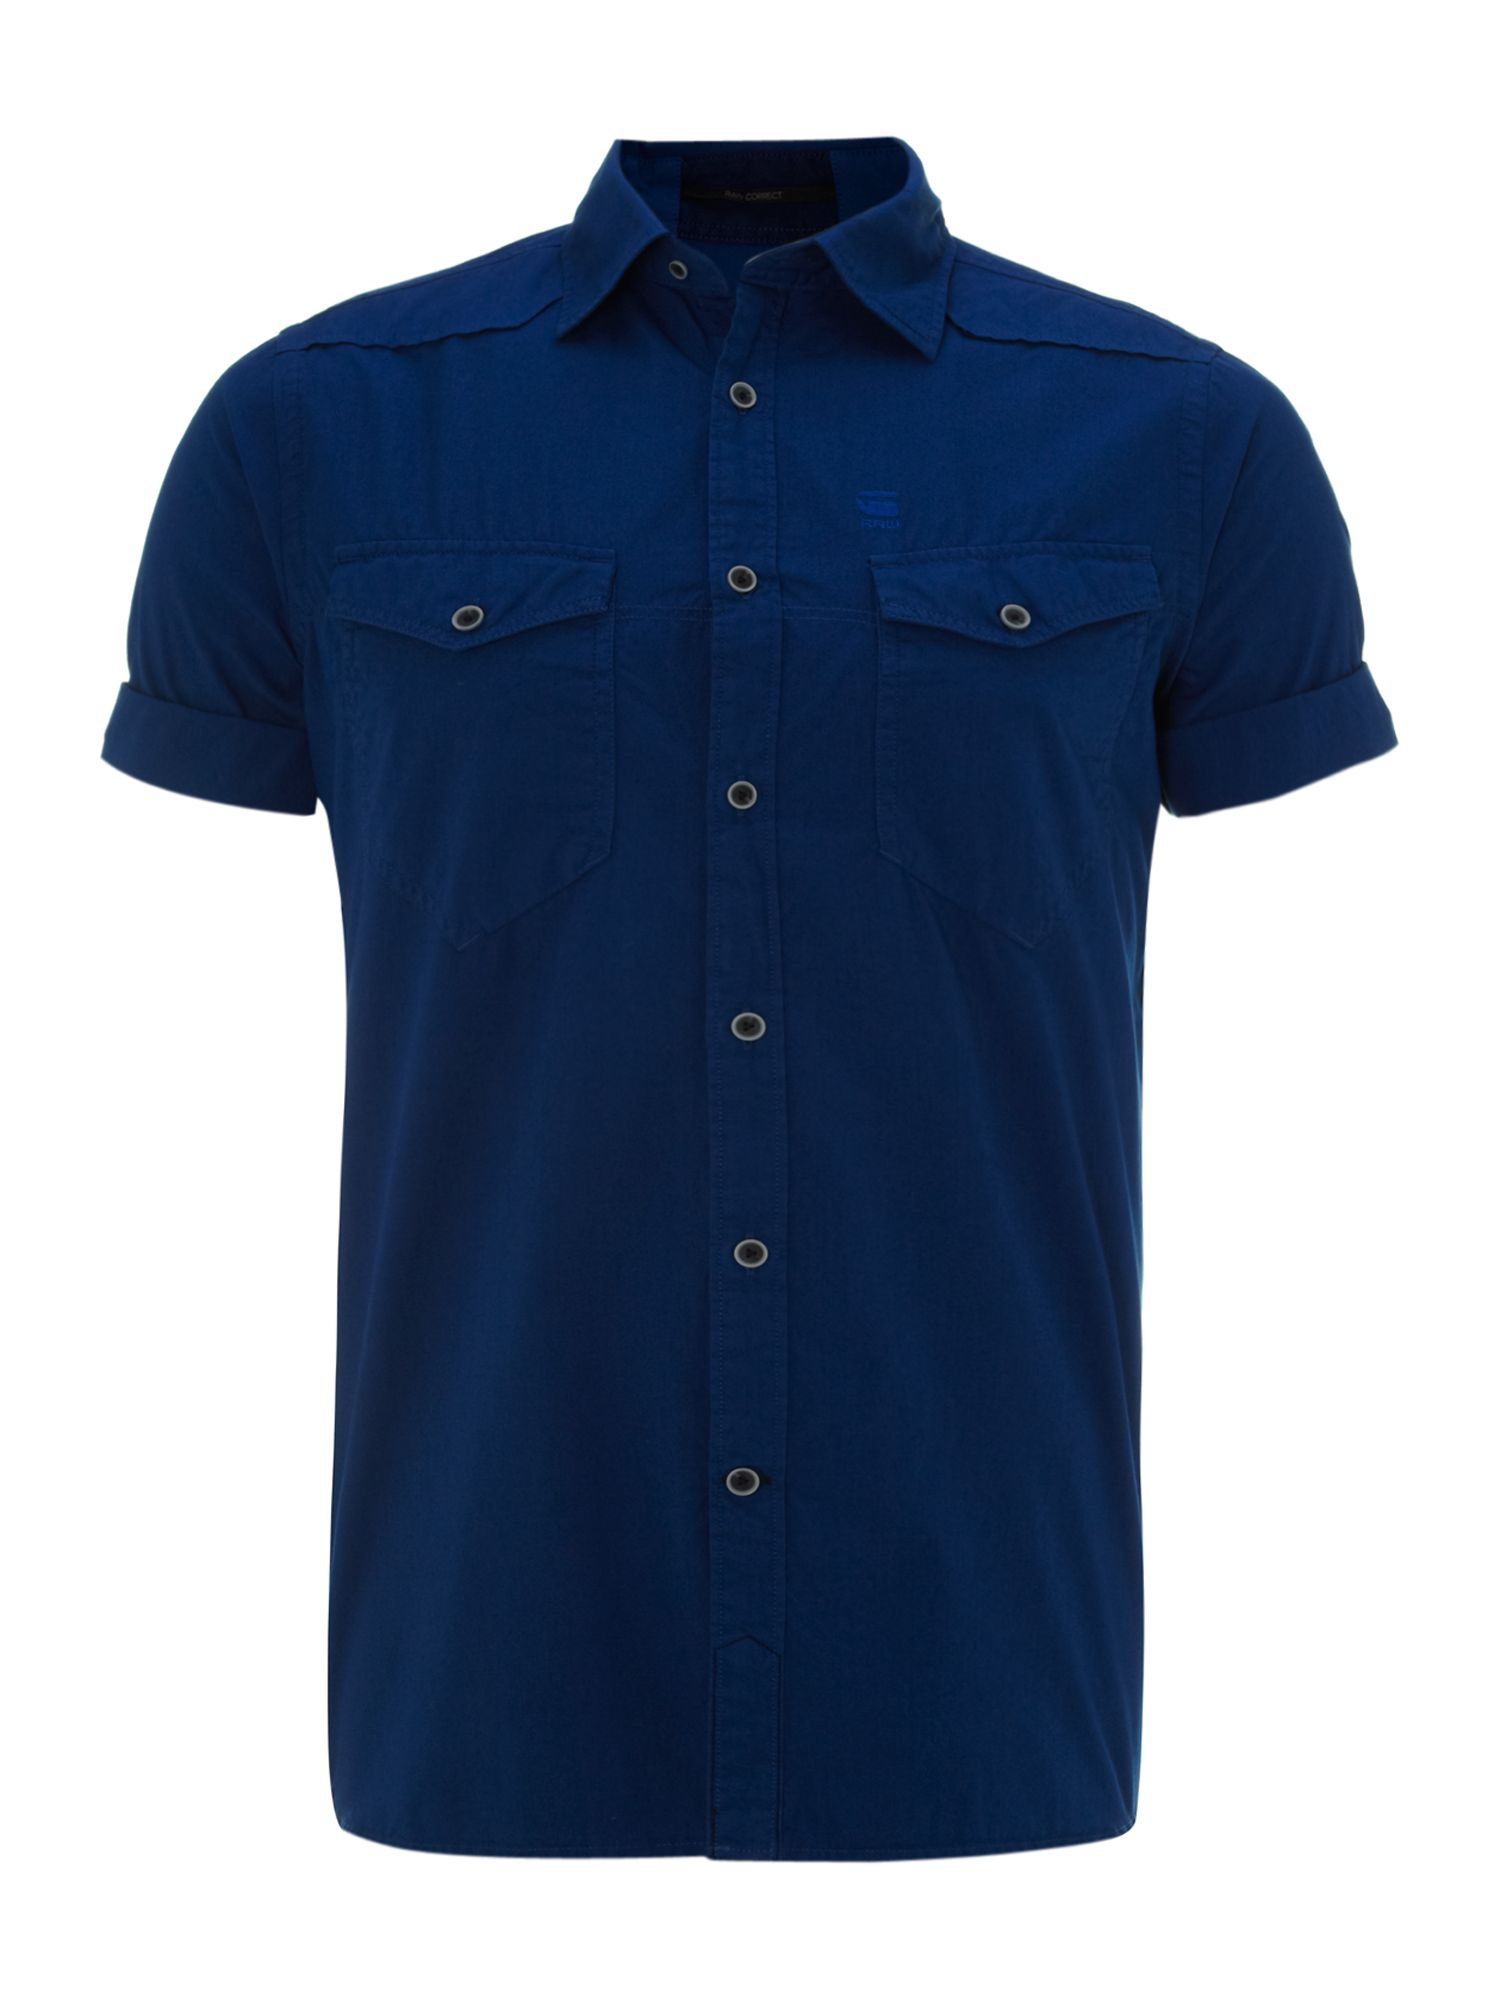 Short sleeve two pocket poplin shirt